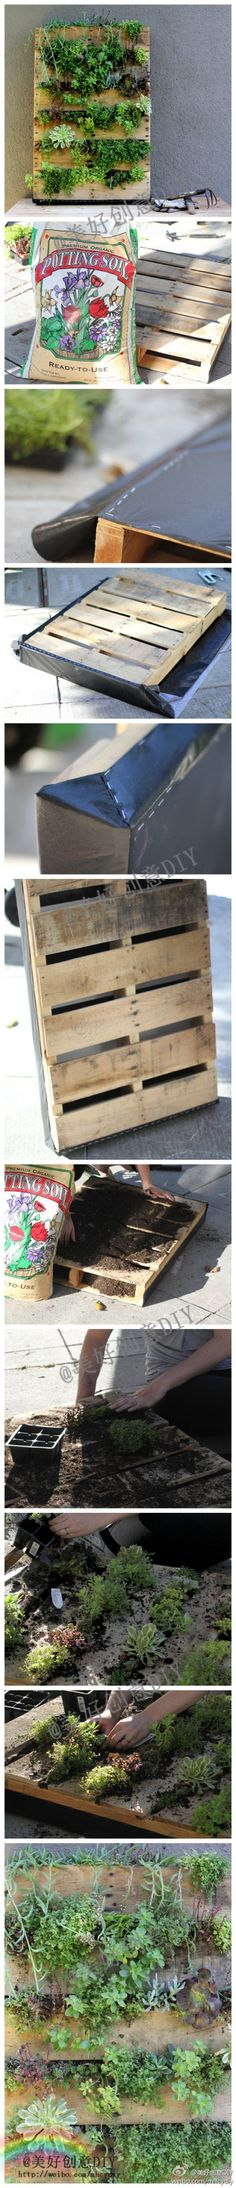 DIY tutorial - easy vertical gardening with recycled pallets.